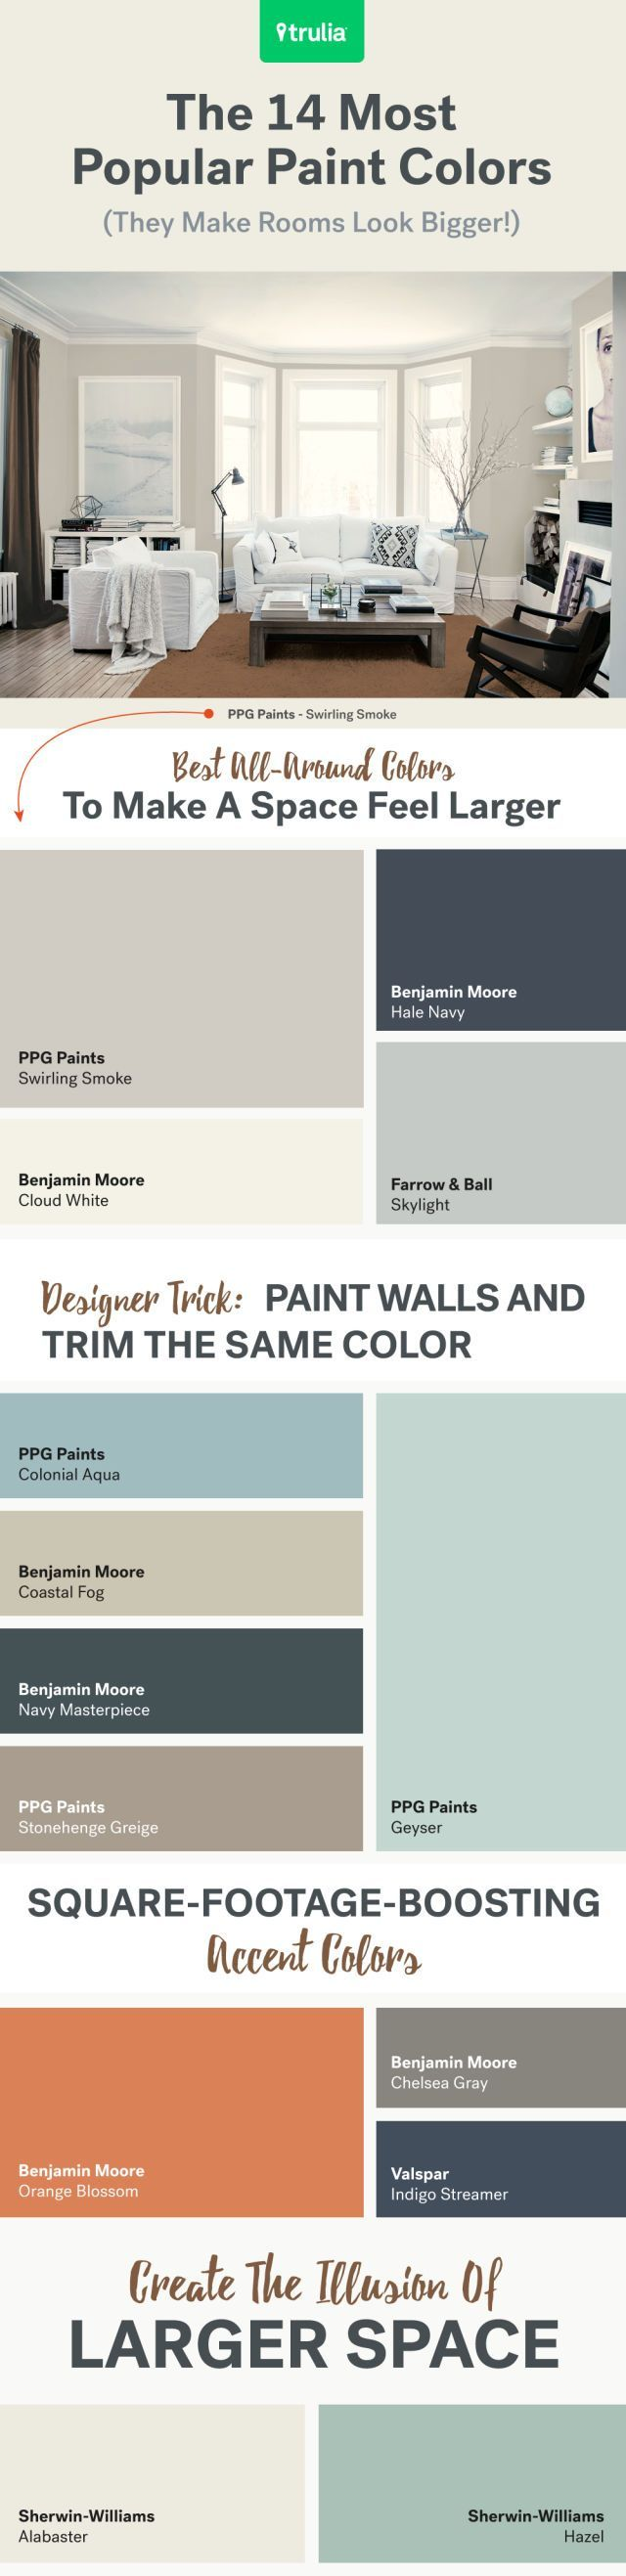 These neutral paint colors work magic by making small spaces feel larger.